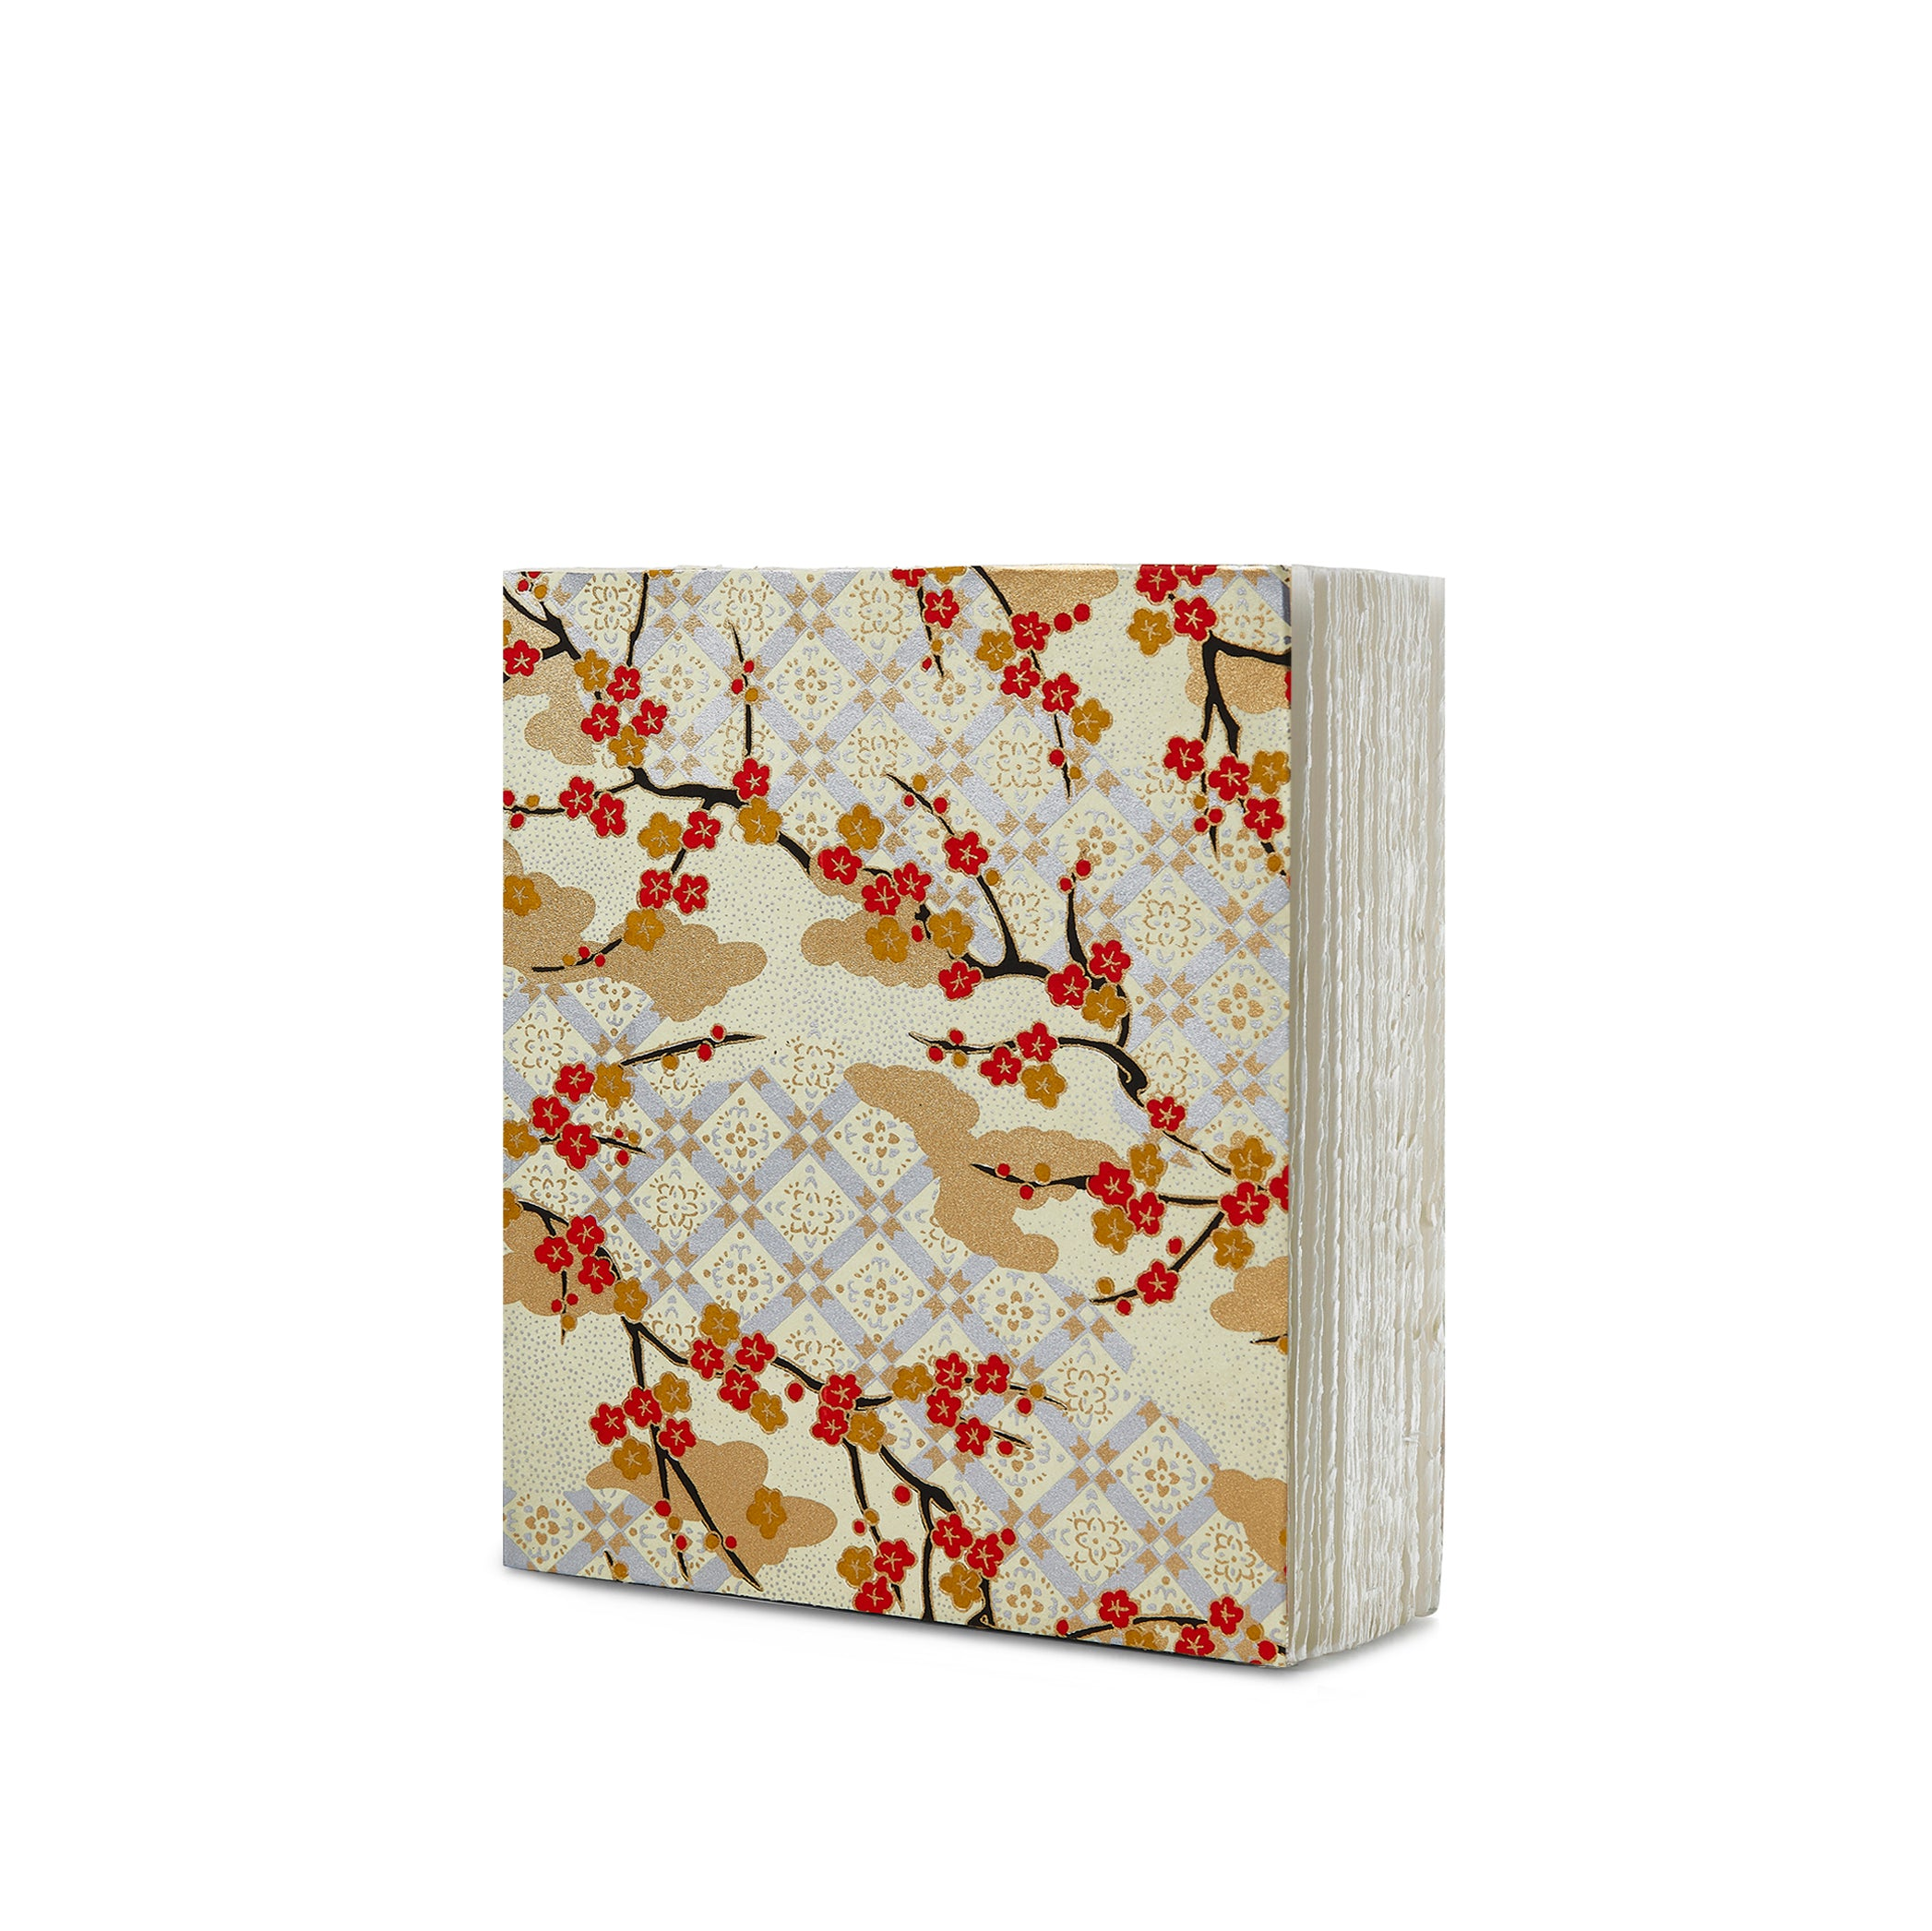 Handprinted Japanese Chiyogami Covered Sketchbook, Flowering Branches on Gold Background